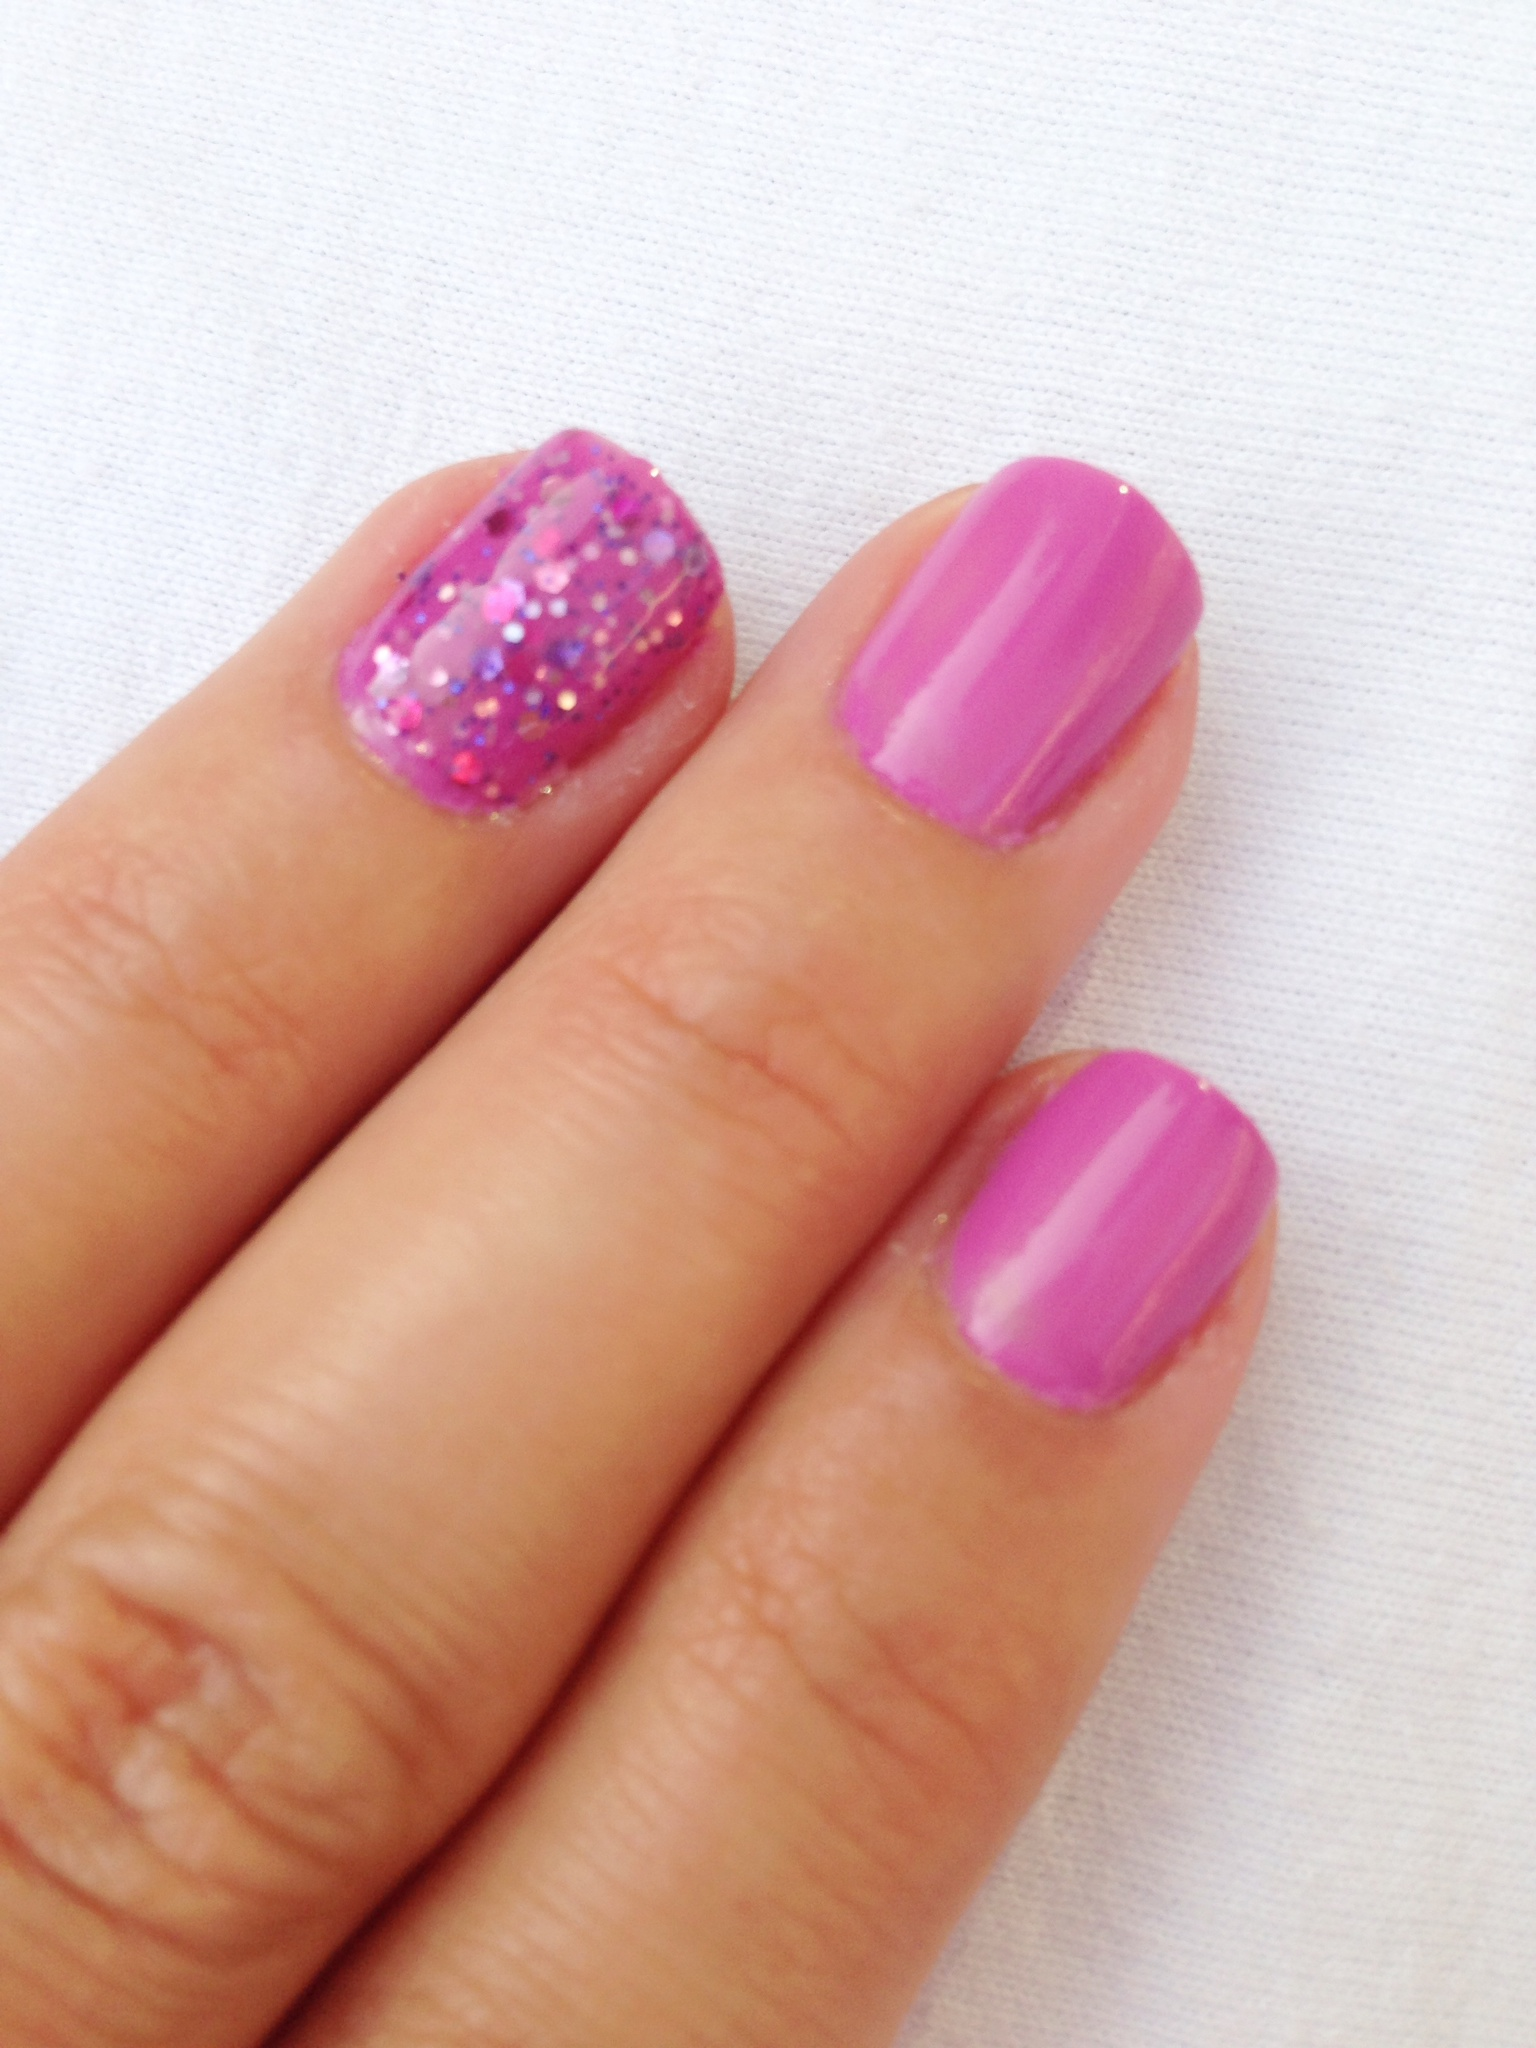 Nail art home sweet sunshine i hope you guys enjoy this weeks colors and nail art idea let me know what you think of this color combo and share your nail photos with me prinsesfo Images